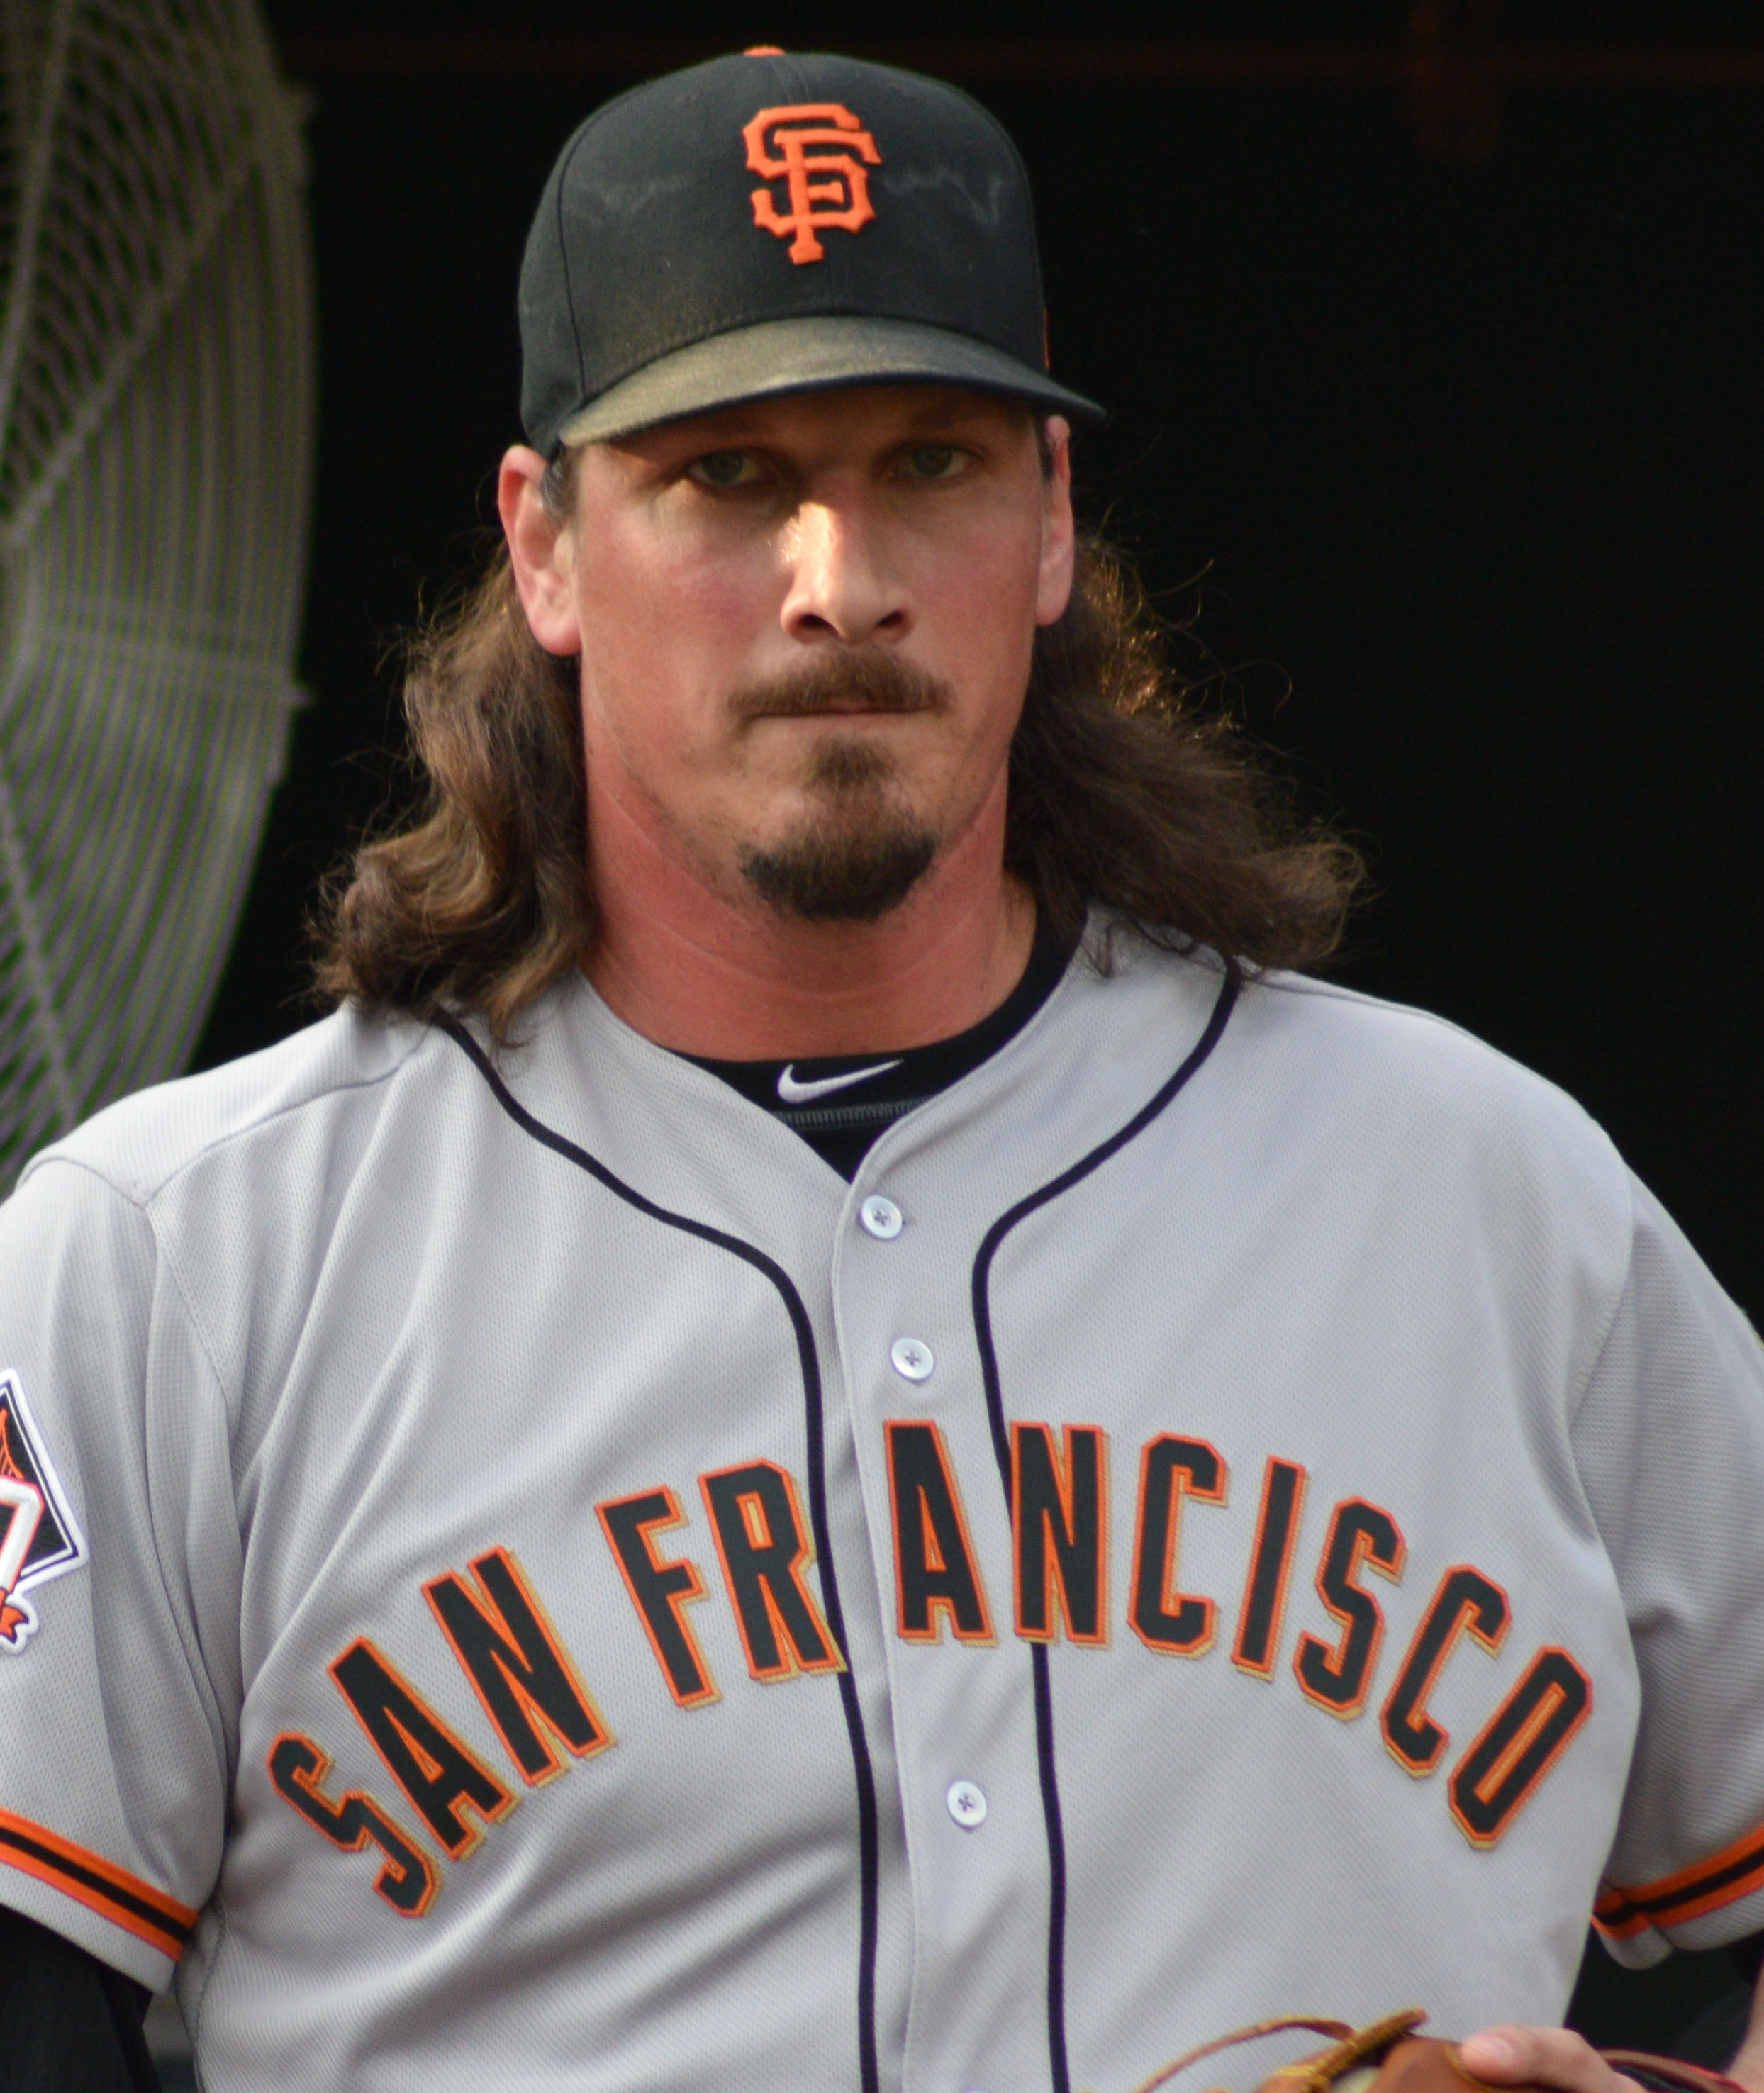 August 10, 2019 -- Led by the hitting of Mike Yastrzemski, the Giants defeated the Phillies at home, 3 to 1. The Giants hitting was helped by the pitching of Jeff Samardzija.